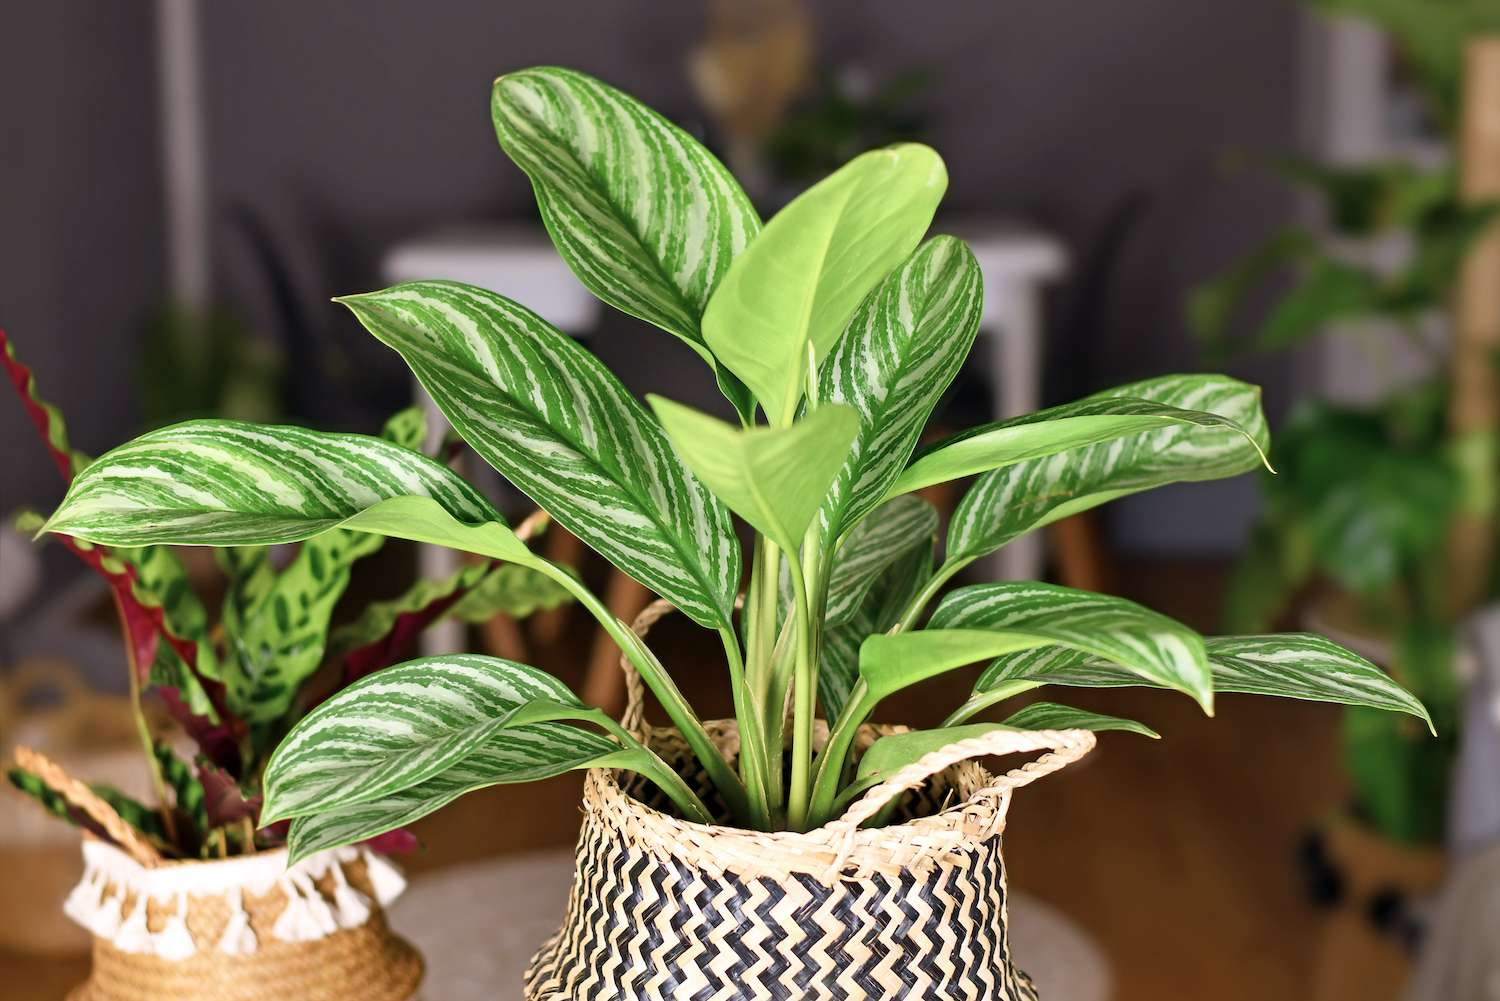 A Chinese evergreen houseplant sits in a woven basket inside among other plants